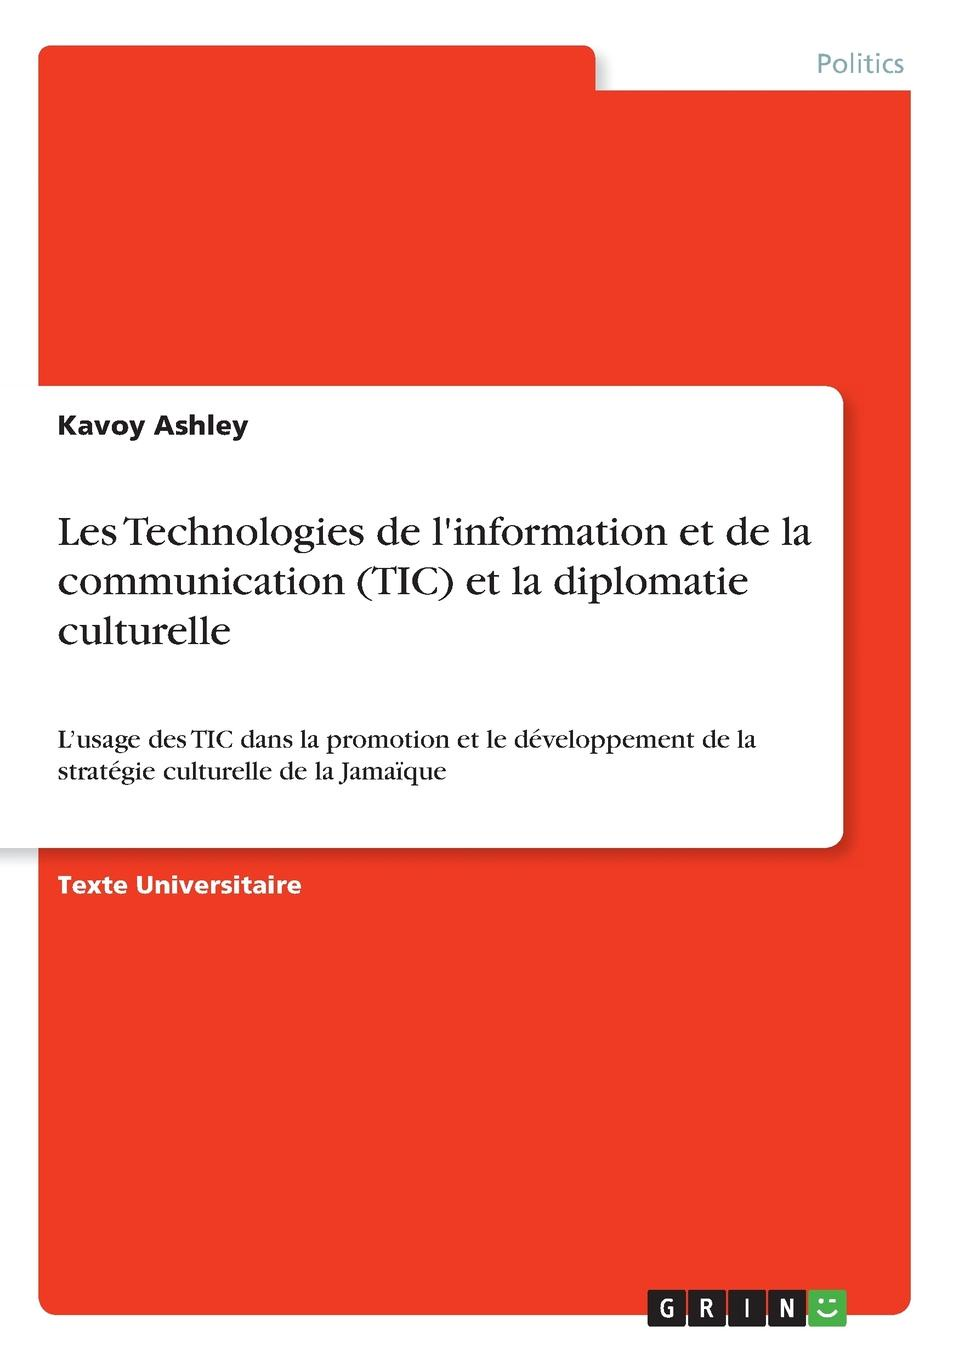 лучшая цена Kavoy Ashley Les Technologies de l.information et de la communication (TIC) et la diplomatie culturelle